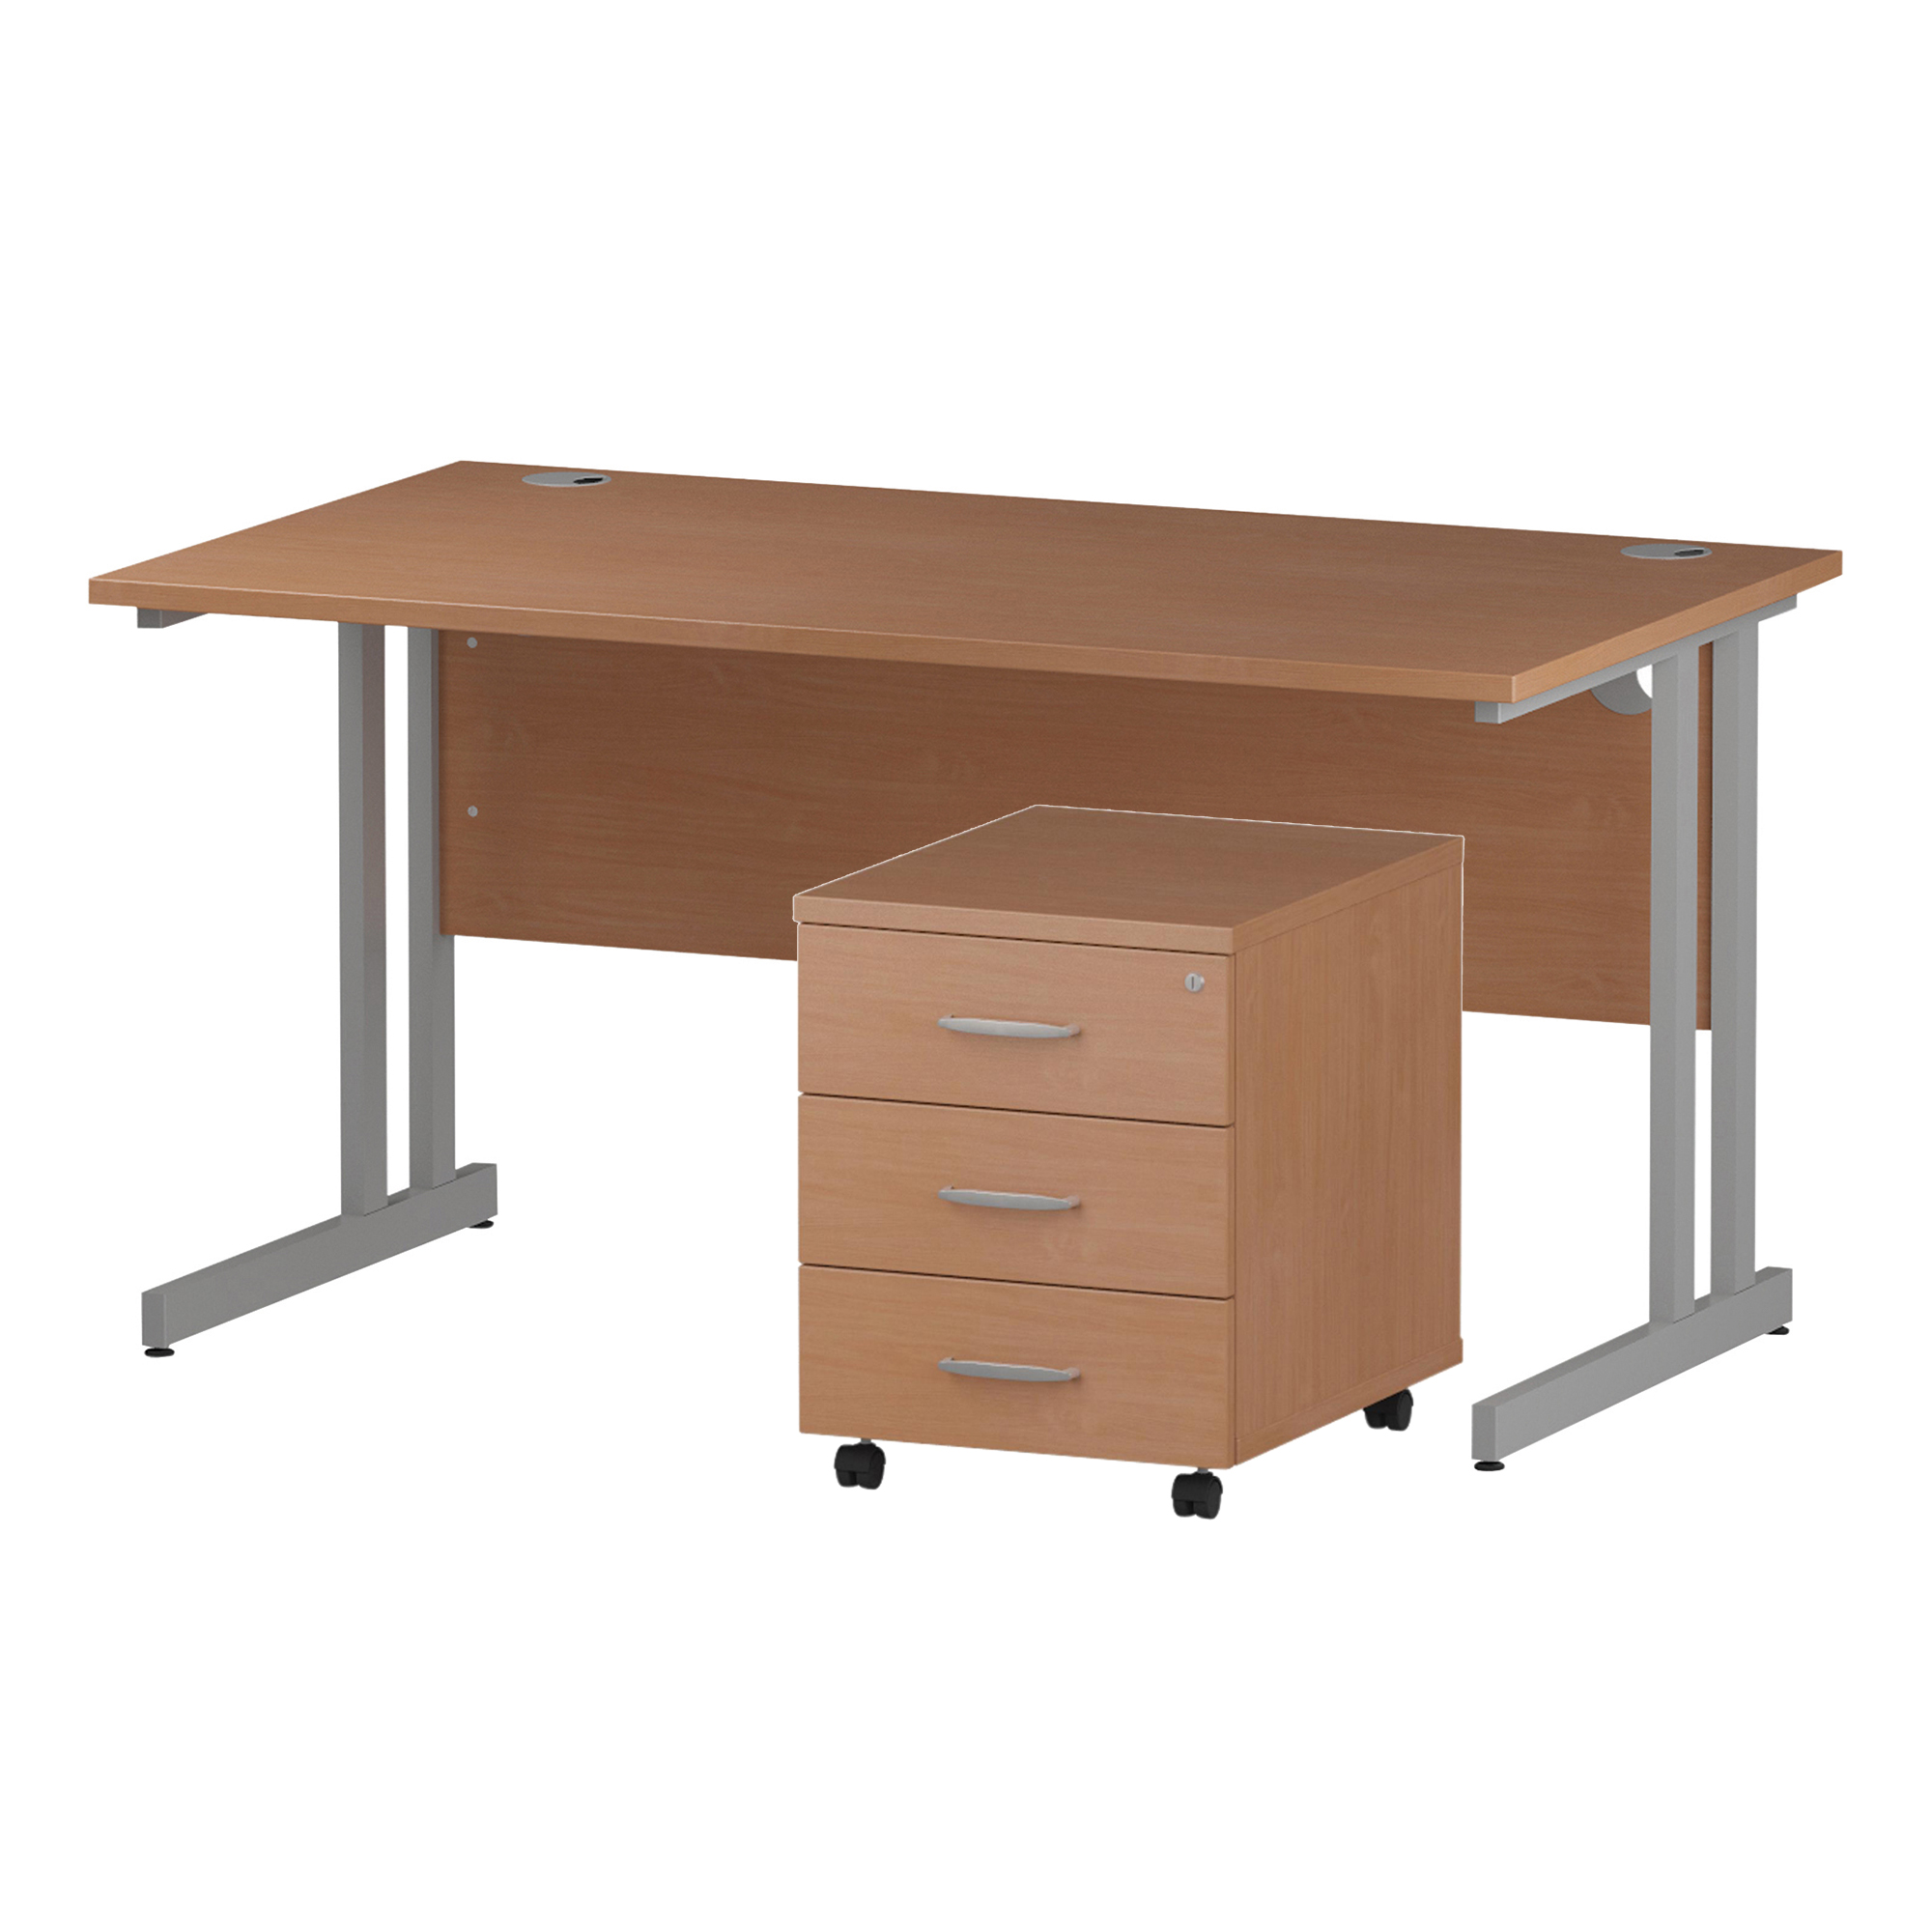 Desks Trexus Cantilever Desk 1400x800 & 3 Drawer Pedestal Beech Bundle Offer Feb-Apr 2020